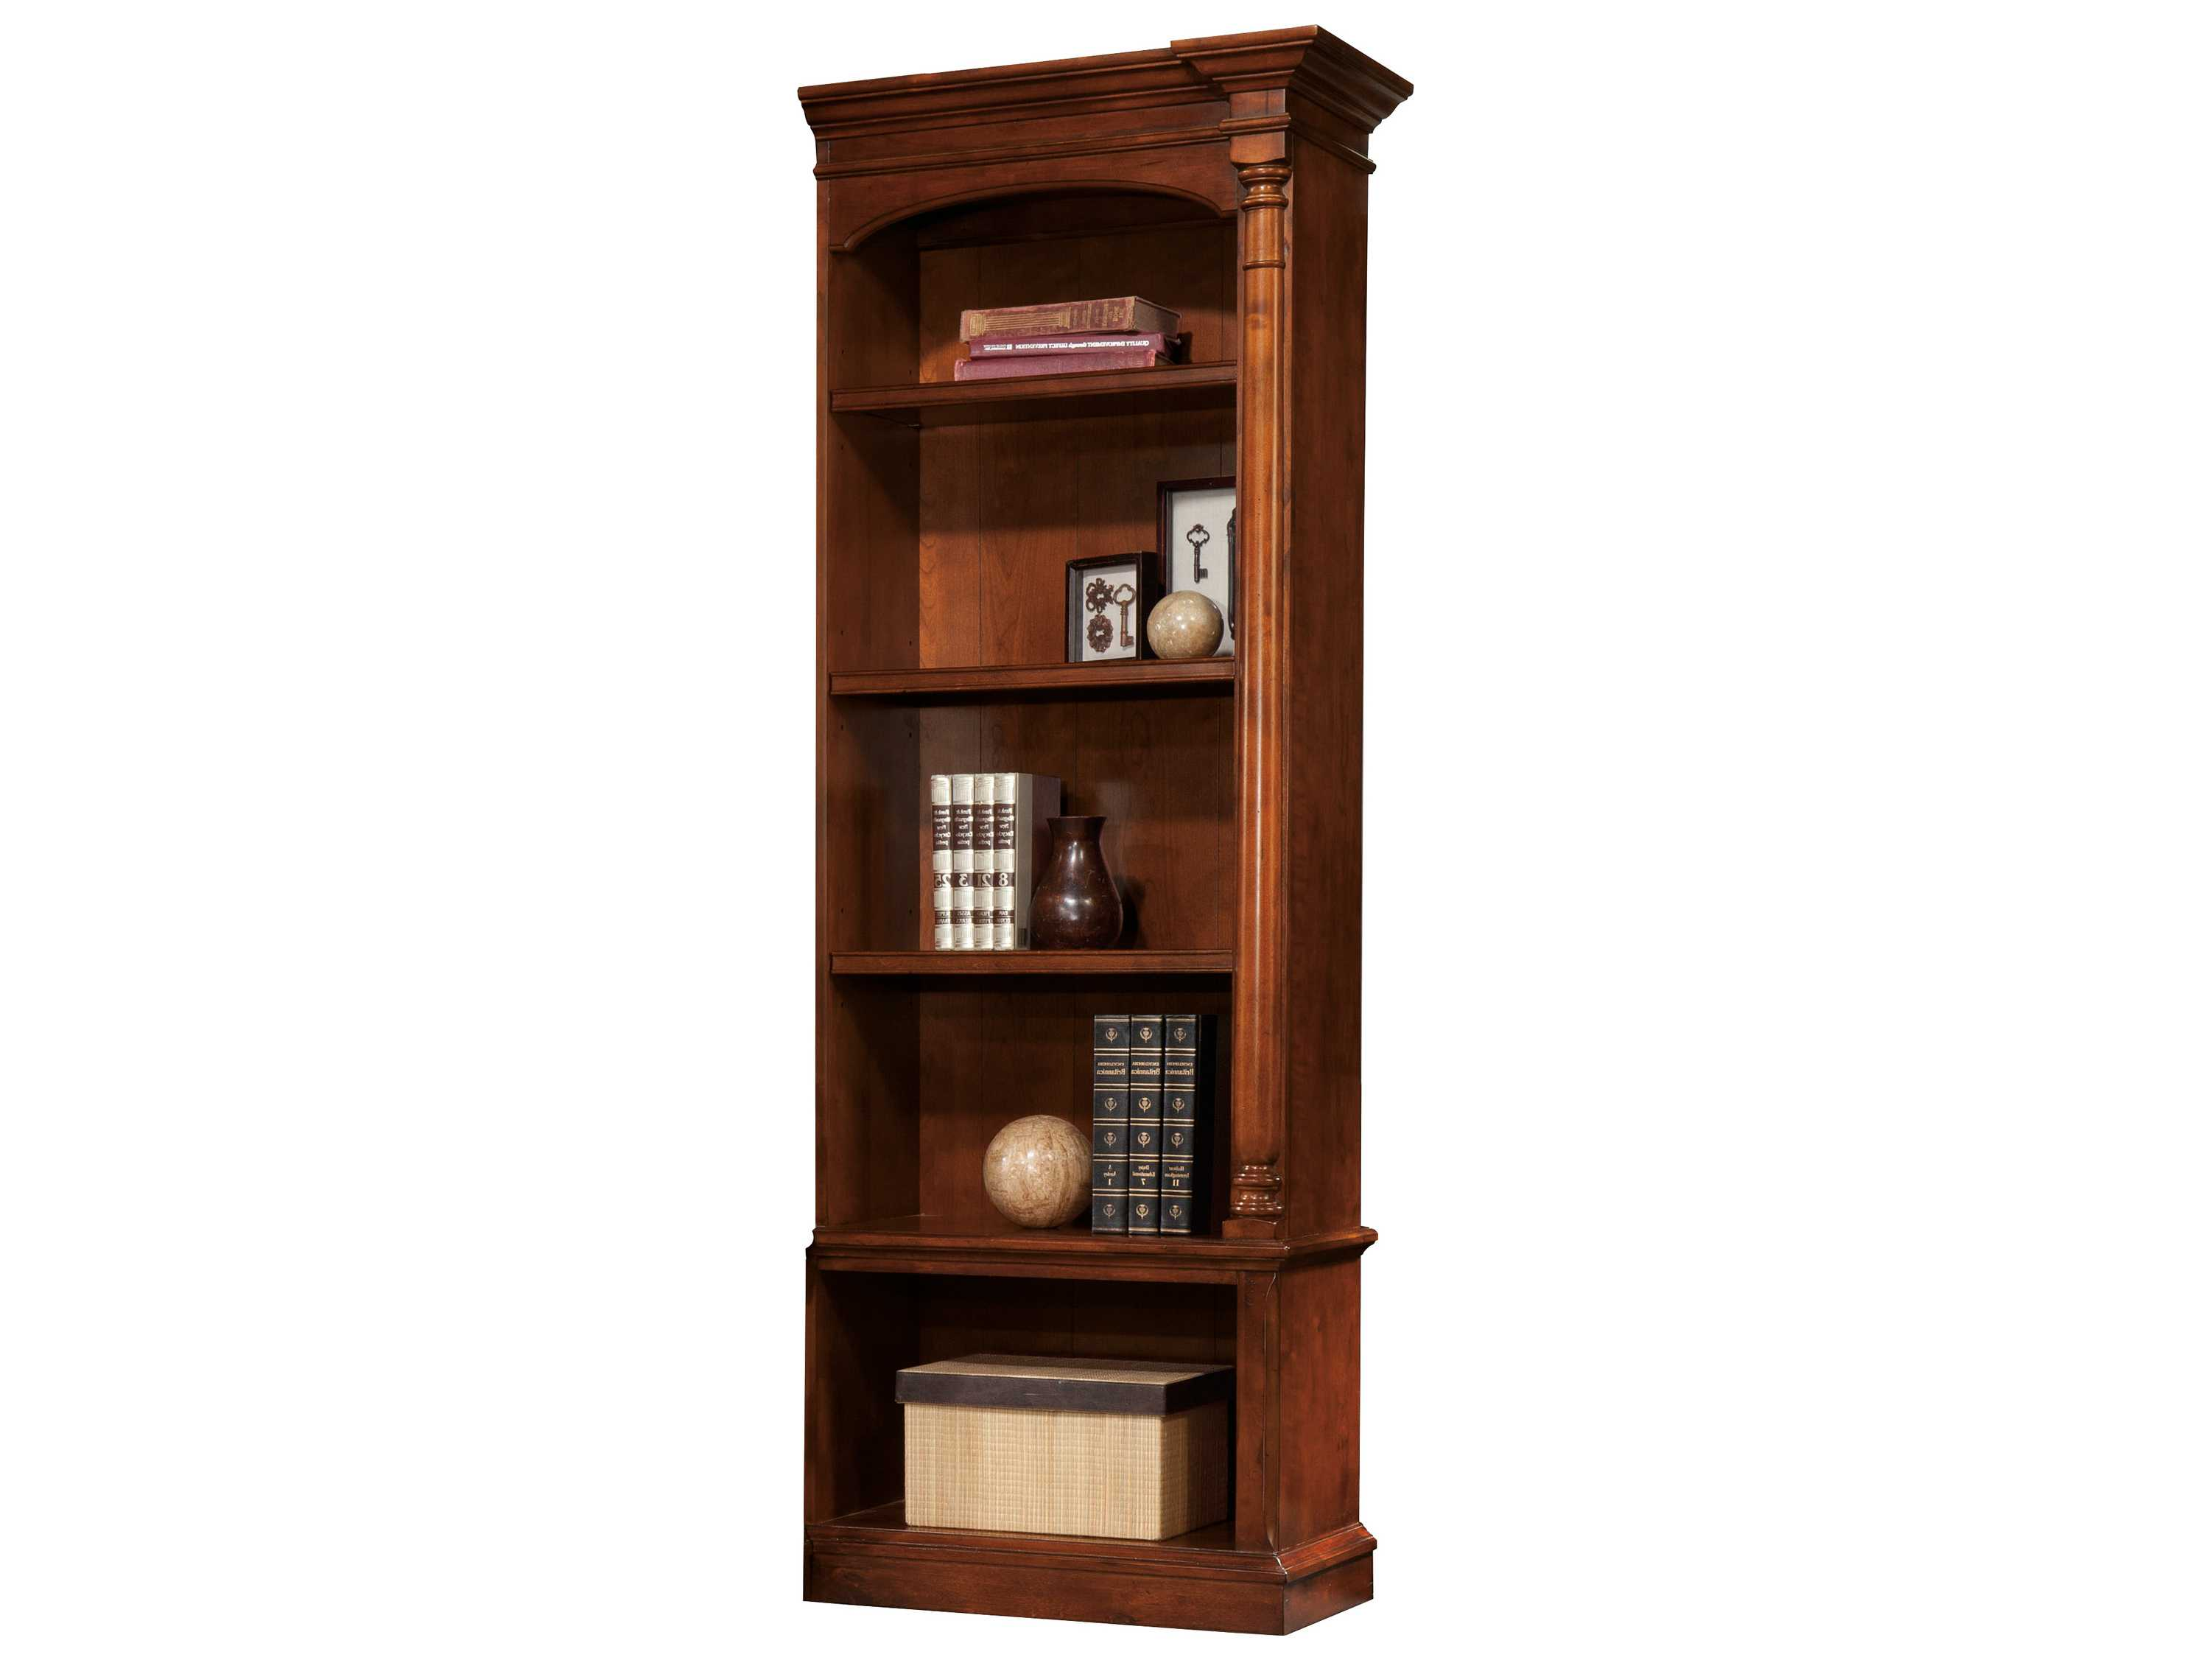 Timber Bookcase: Hekman New Office Executive Right Pier Bookcase